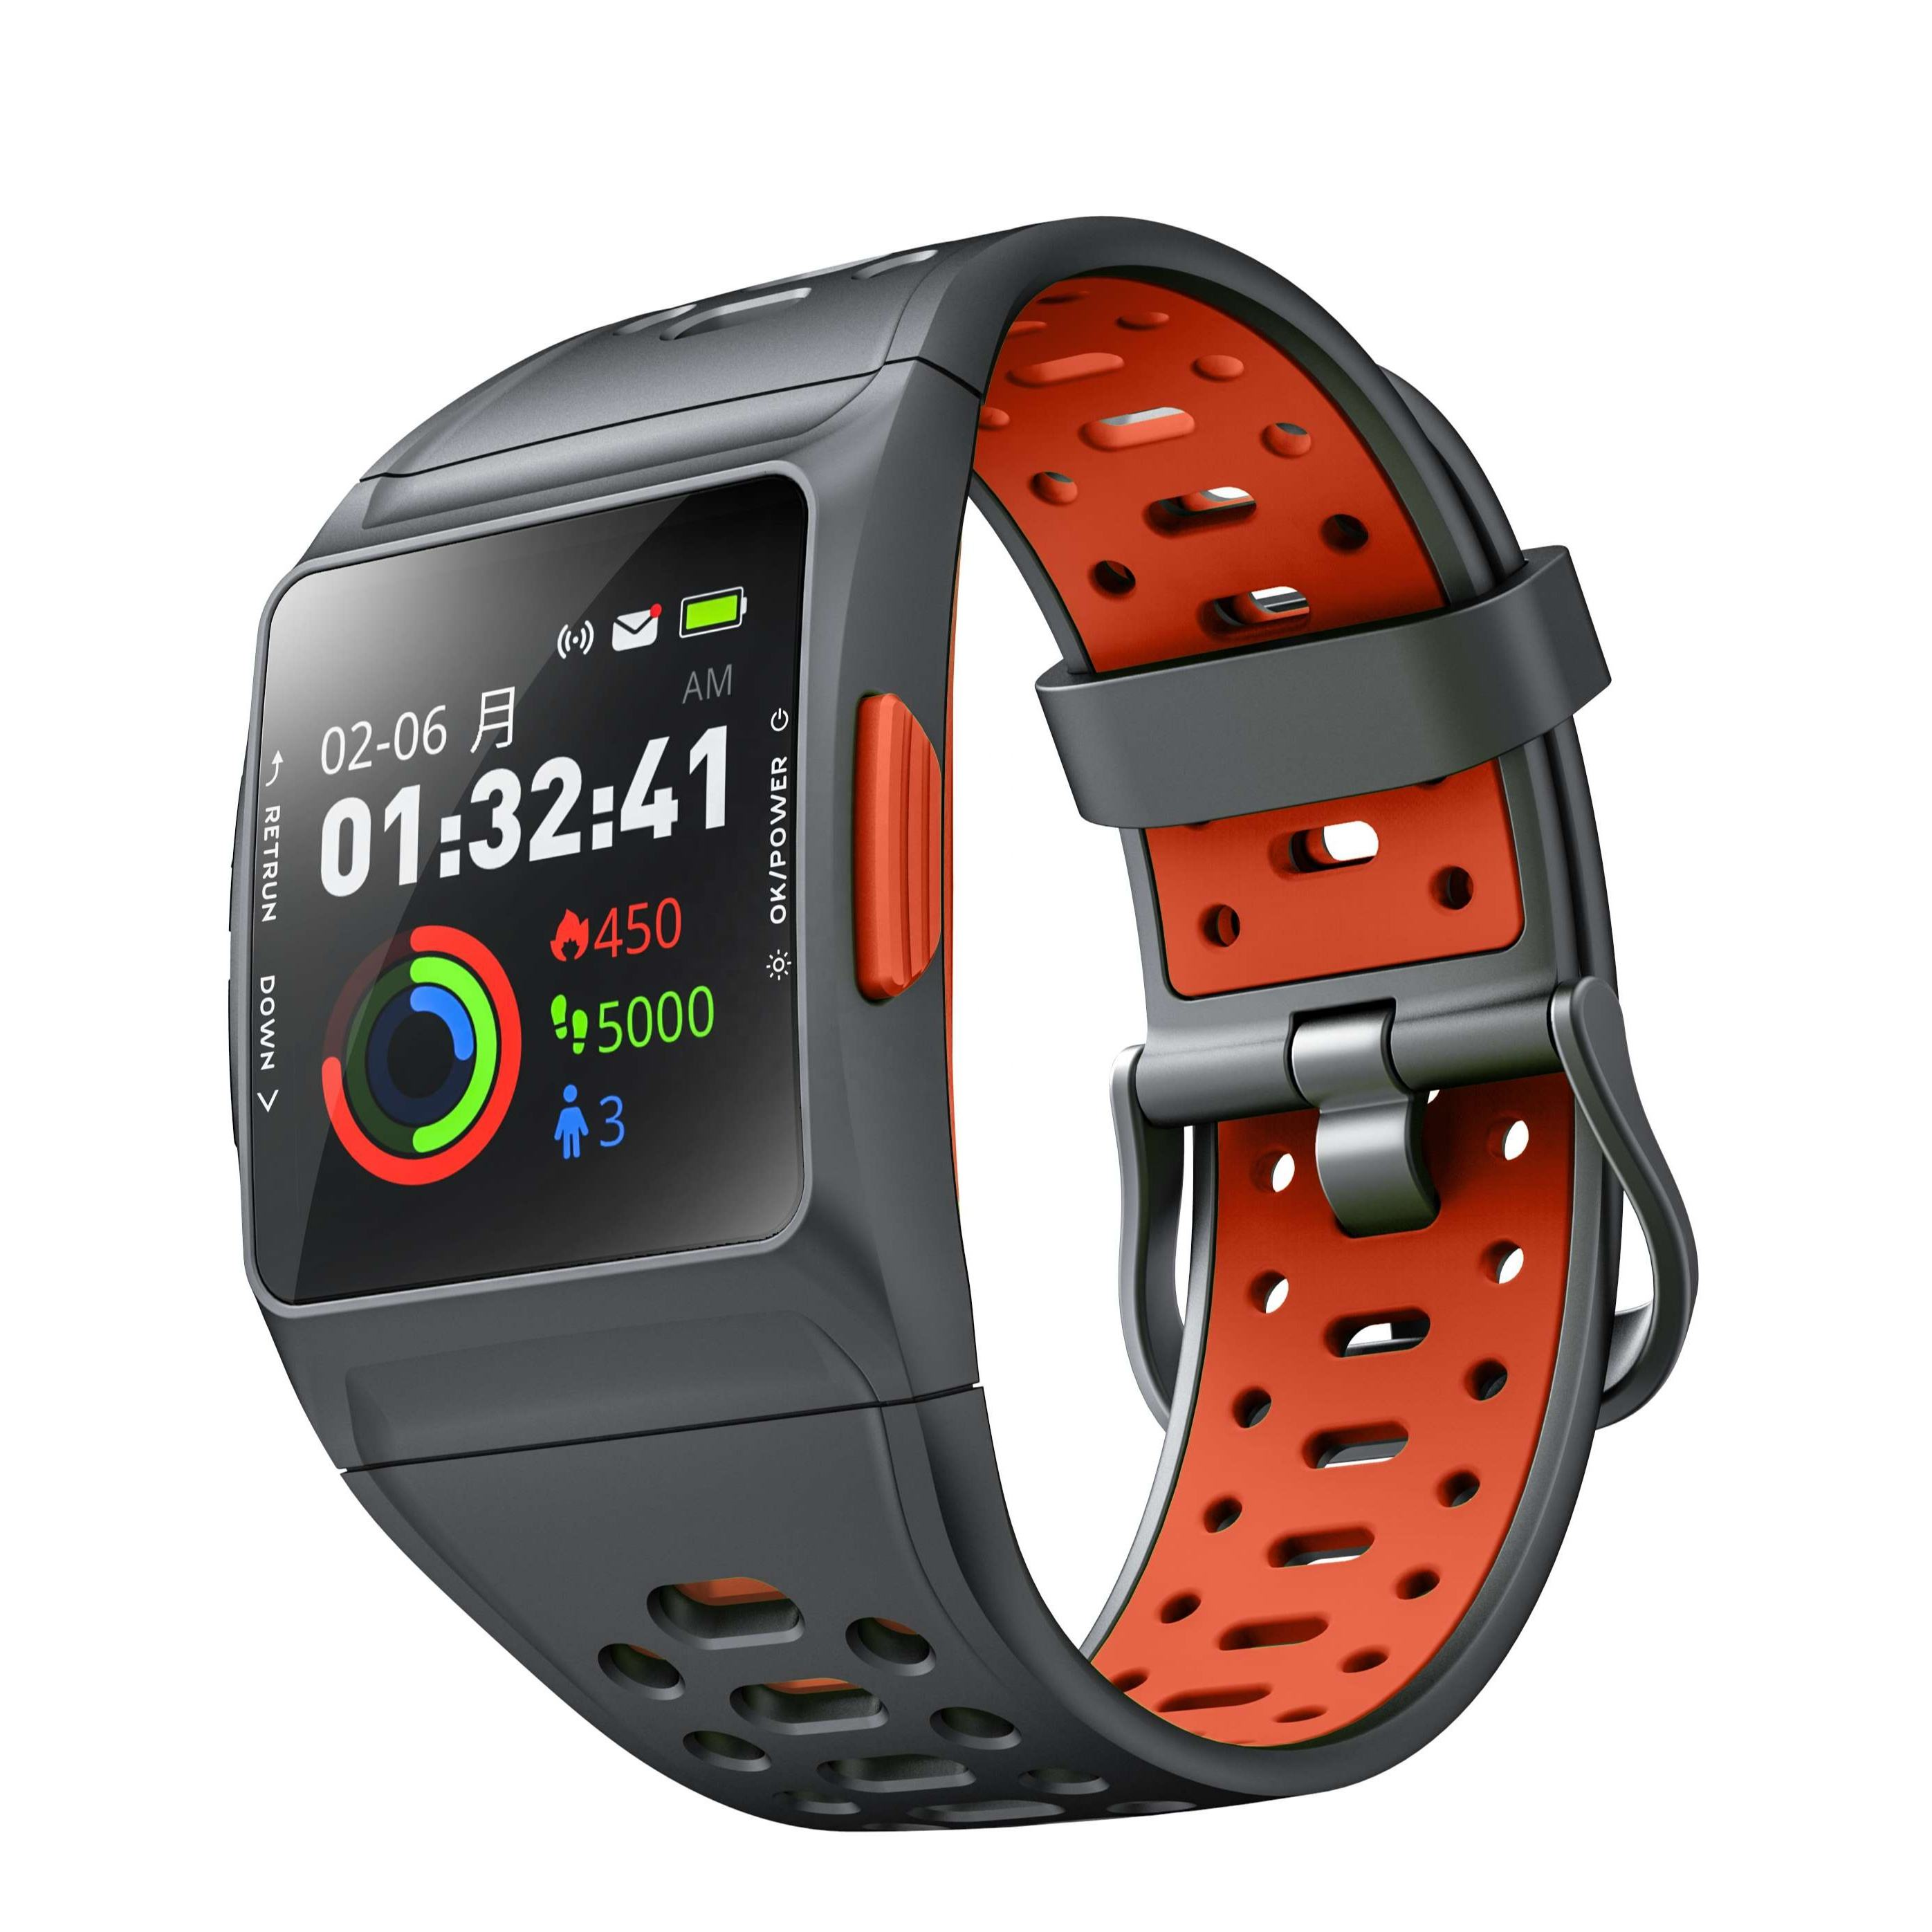 2019 Smart Watch IWOWNfit P1L GPS Smartwatch Heart Rate Monitor Fitness Tracker Pedometer Calories Counter IP68 Sports Watch